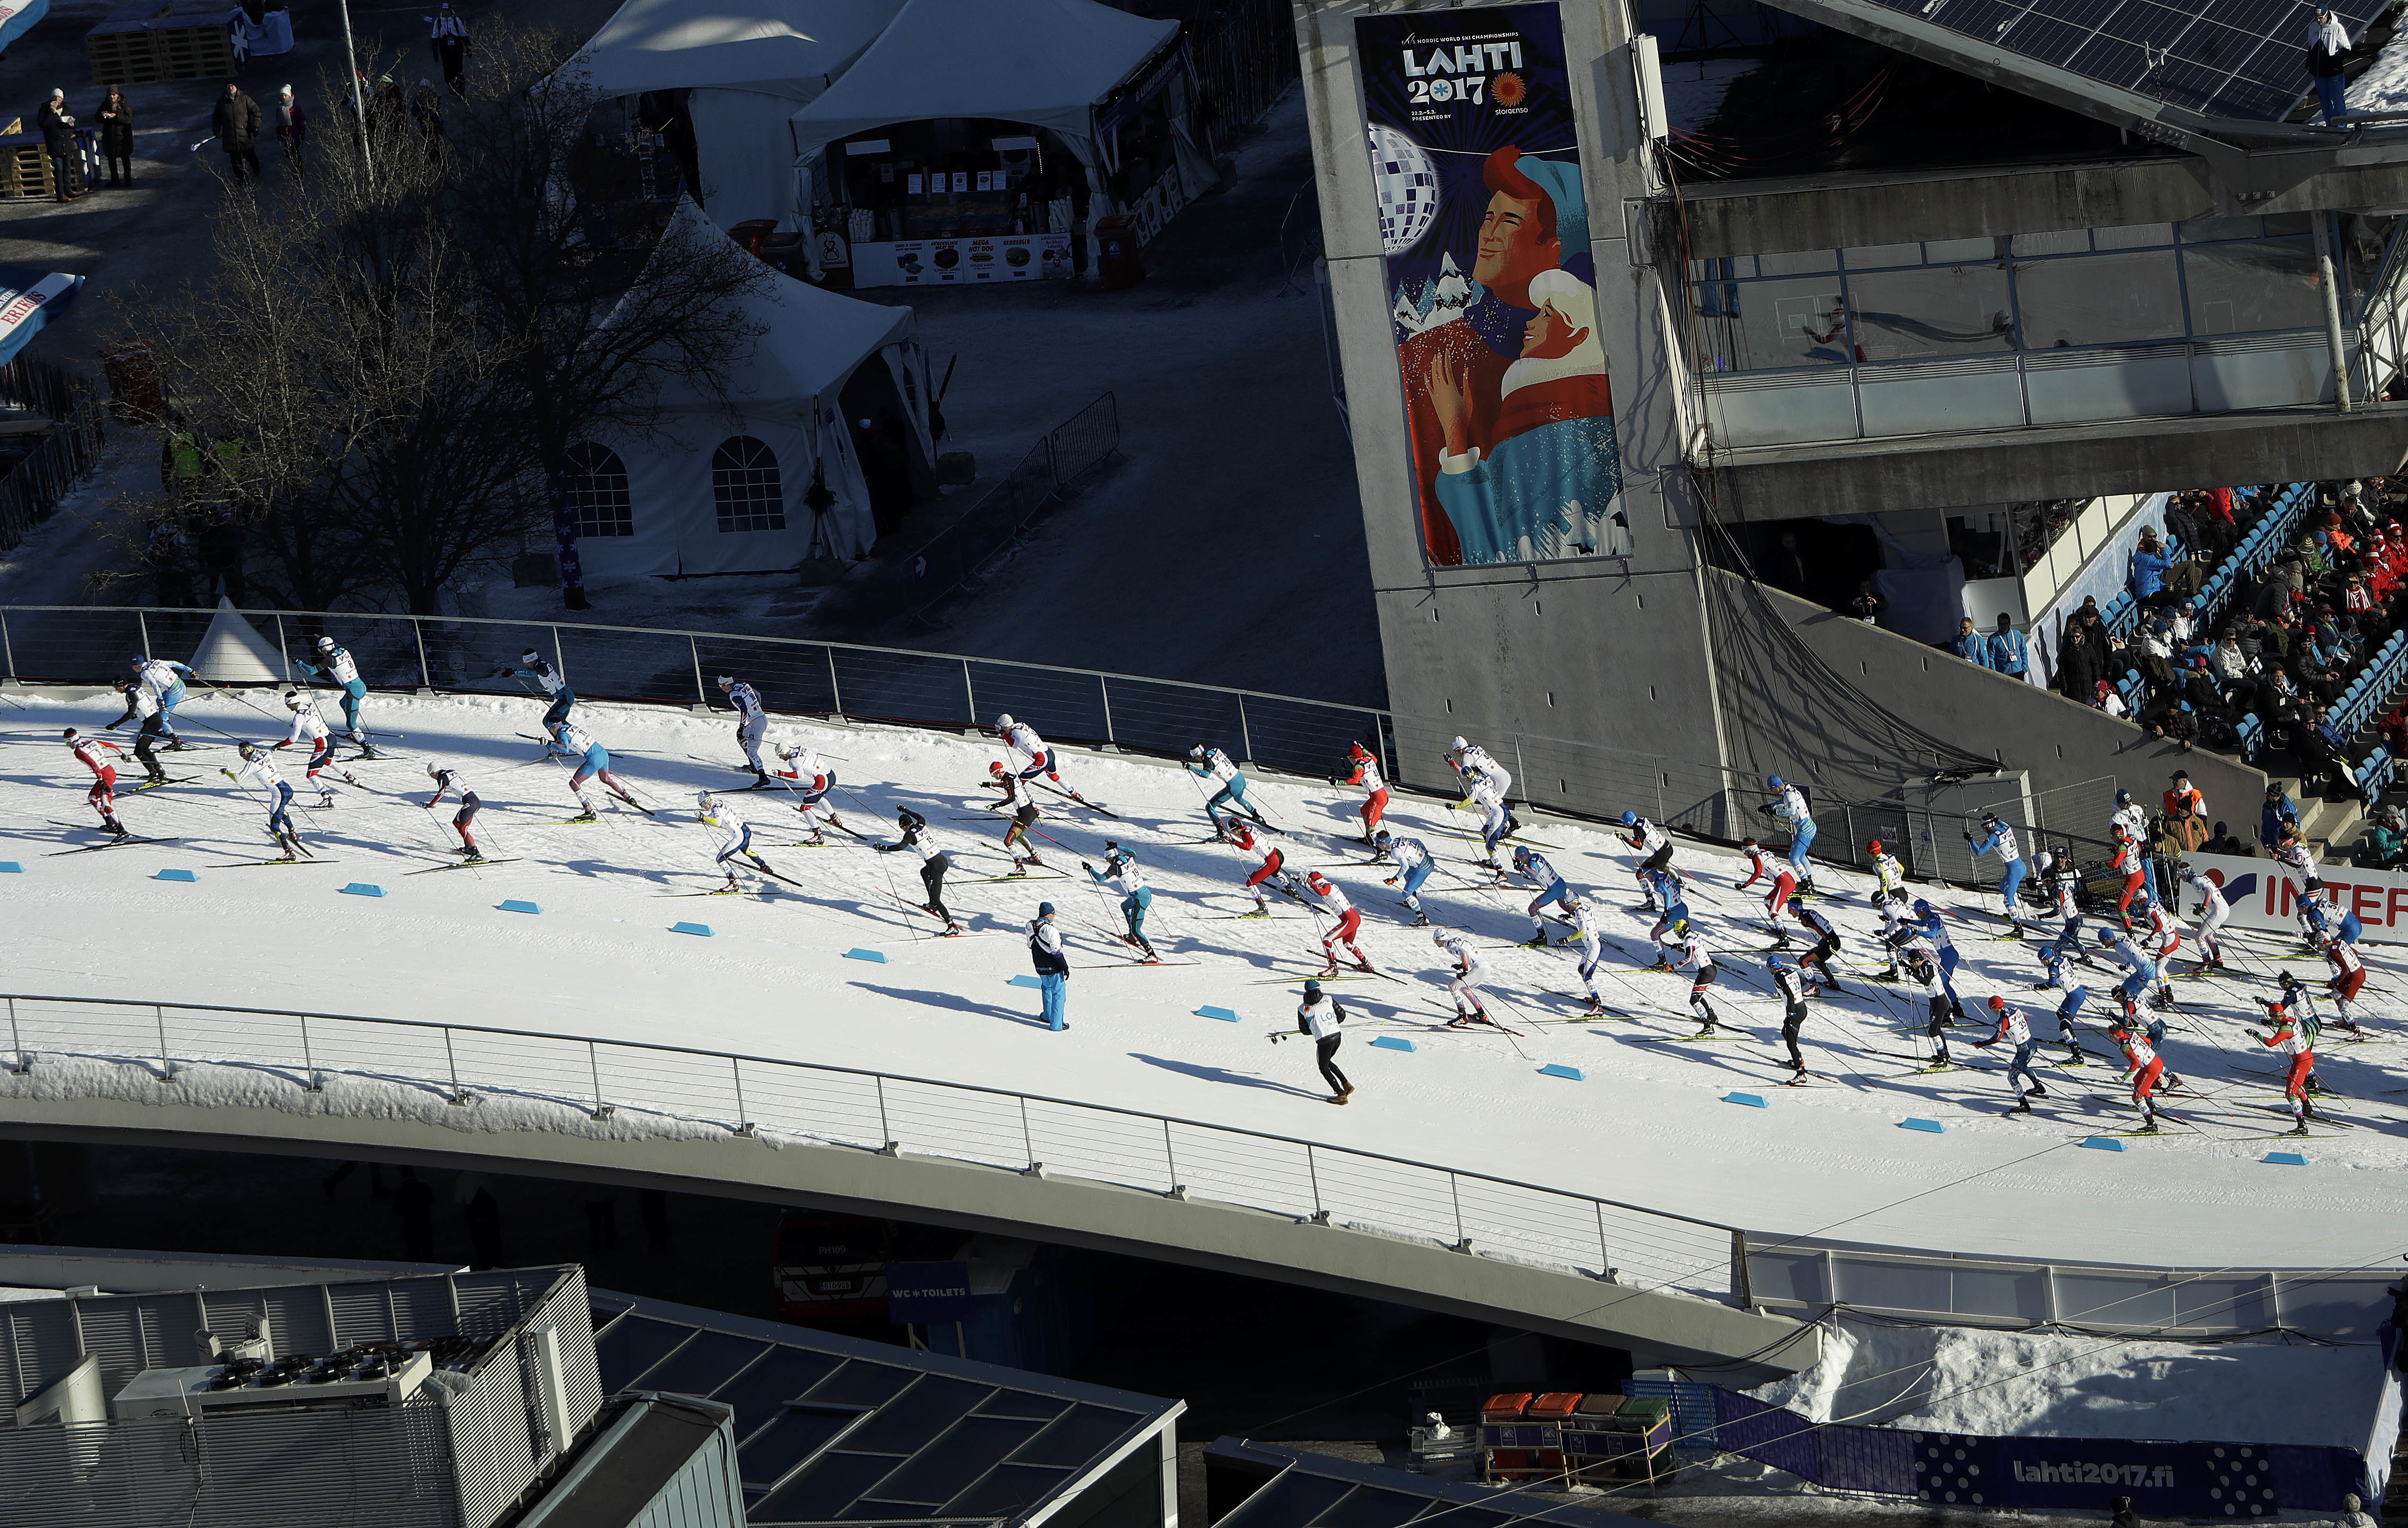 Athletes start for the men's 50 km race during the 2017 Nordic Skiing World Championships in Lahti, Finland, Sunday, March 5, 2017. (AP Photo/Matthias Schrader)